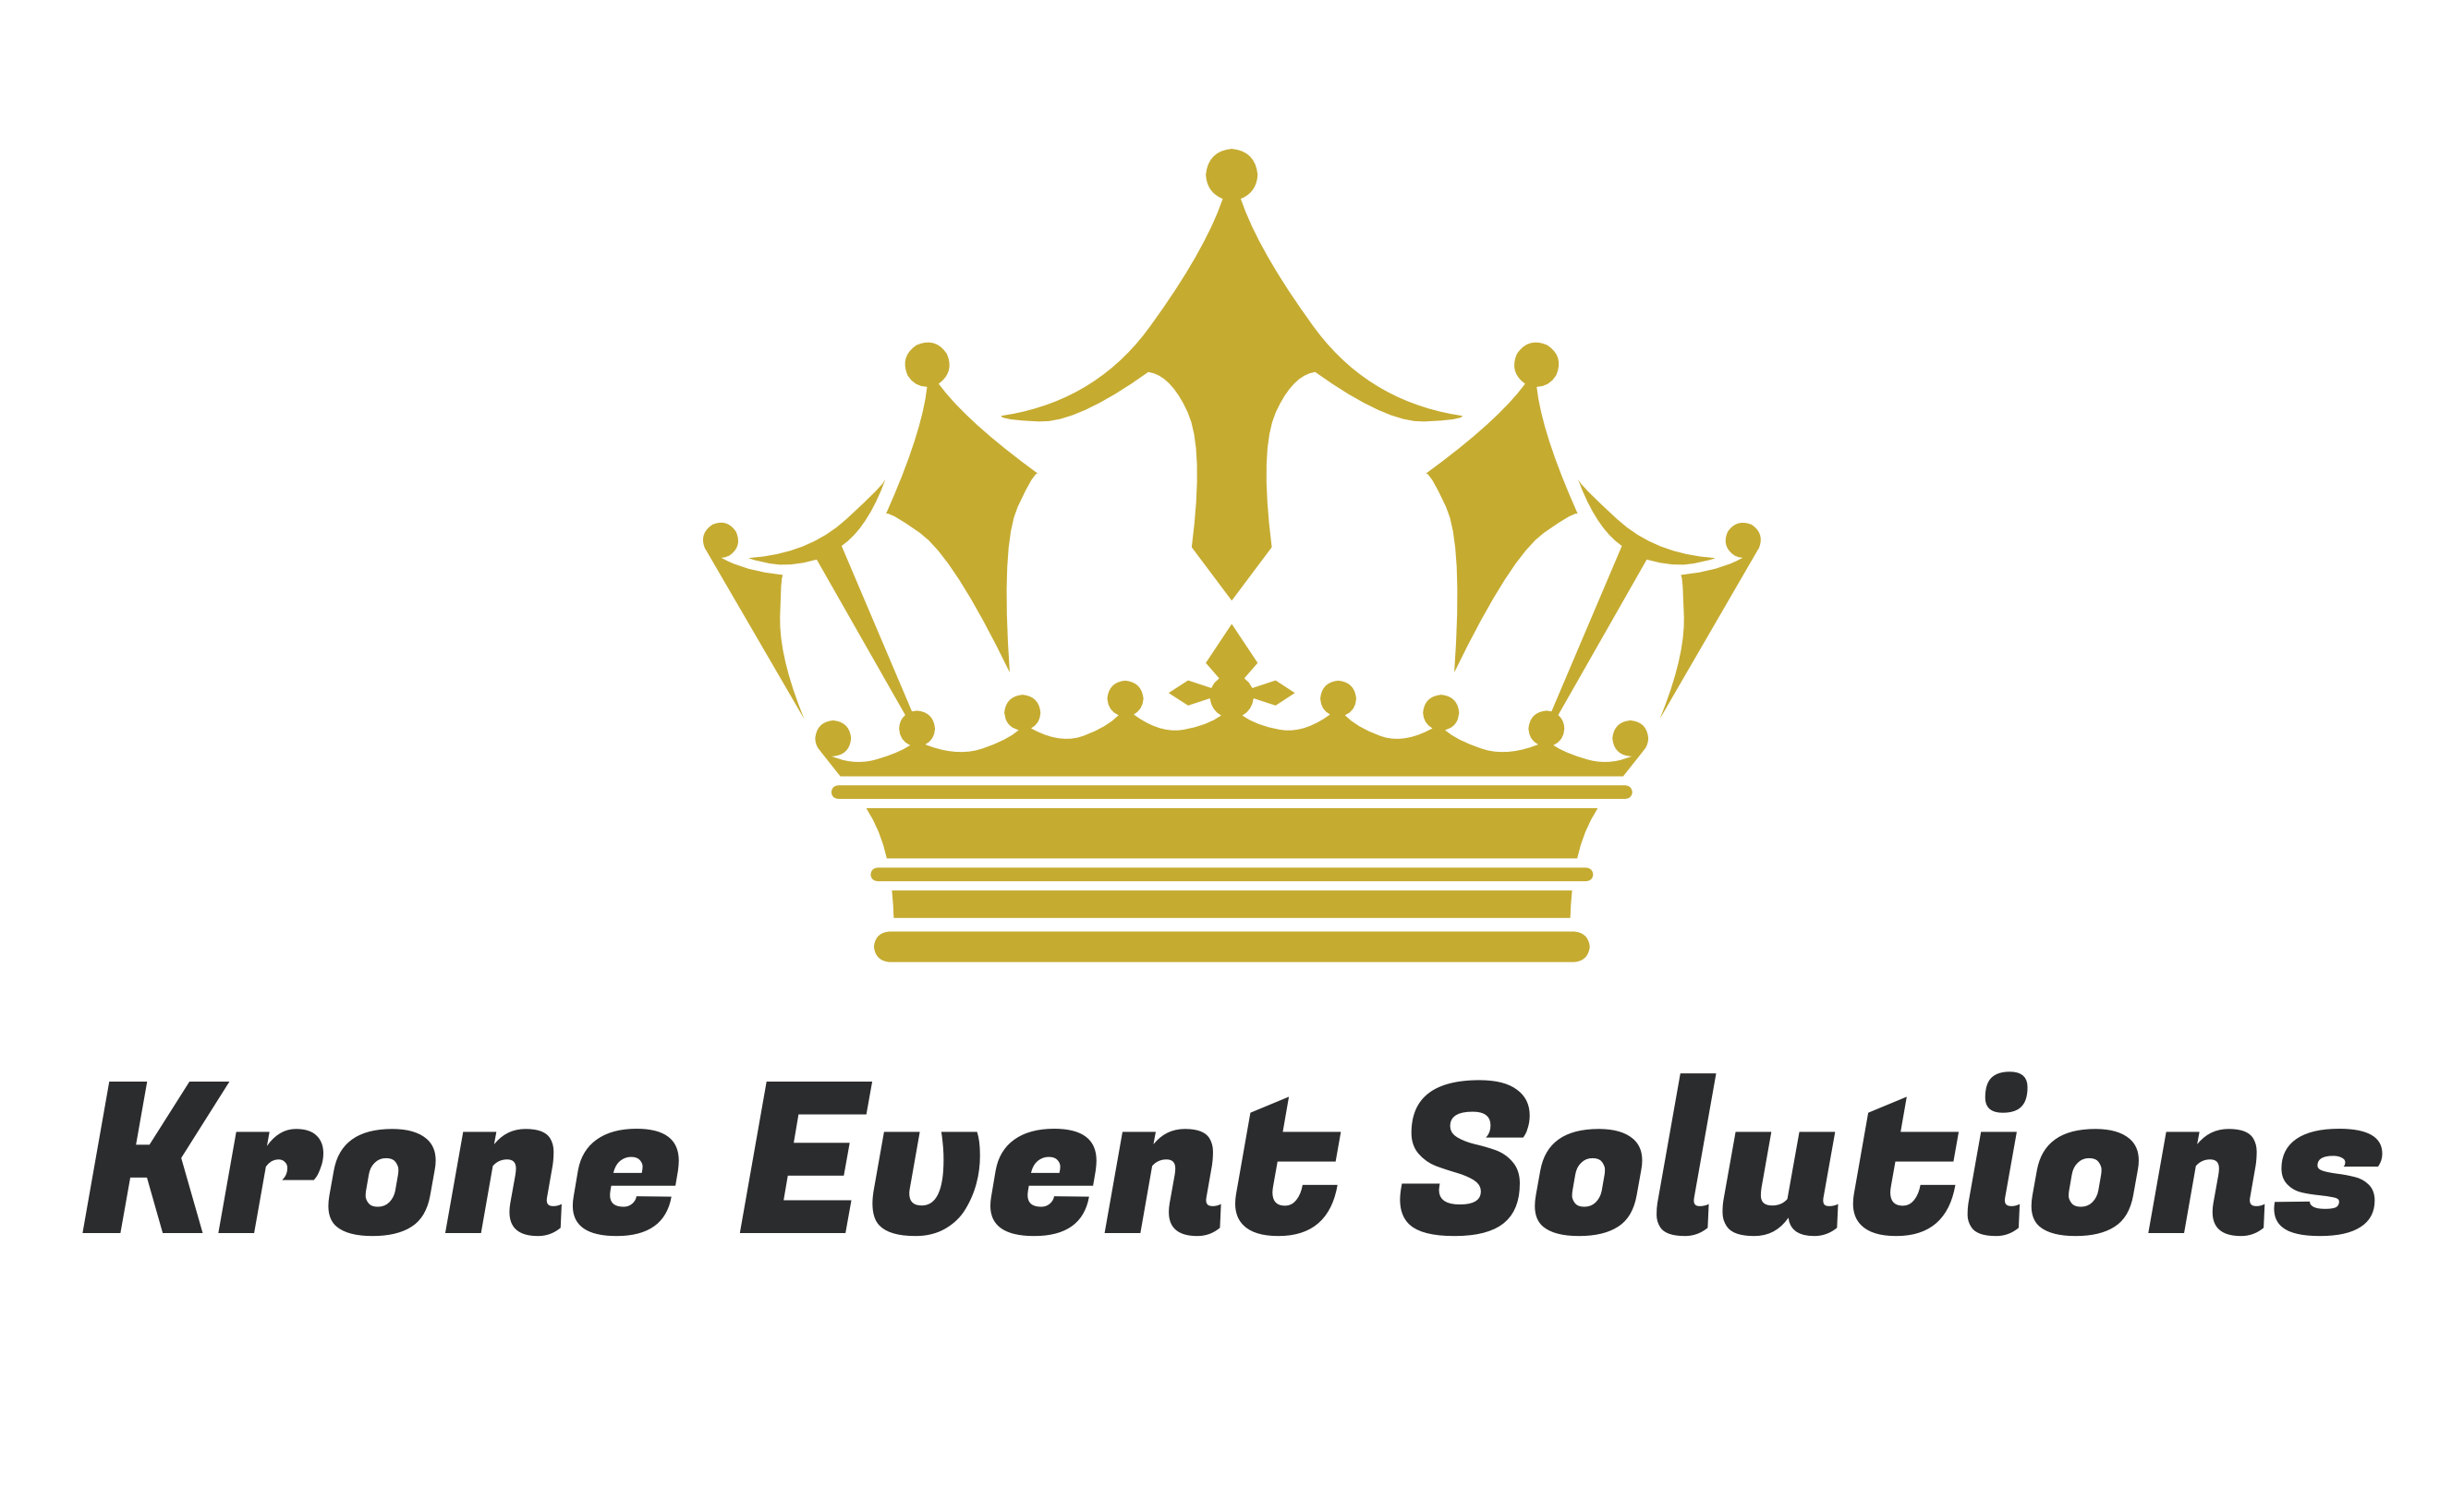 Krone Event Solutions